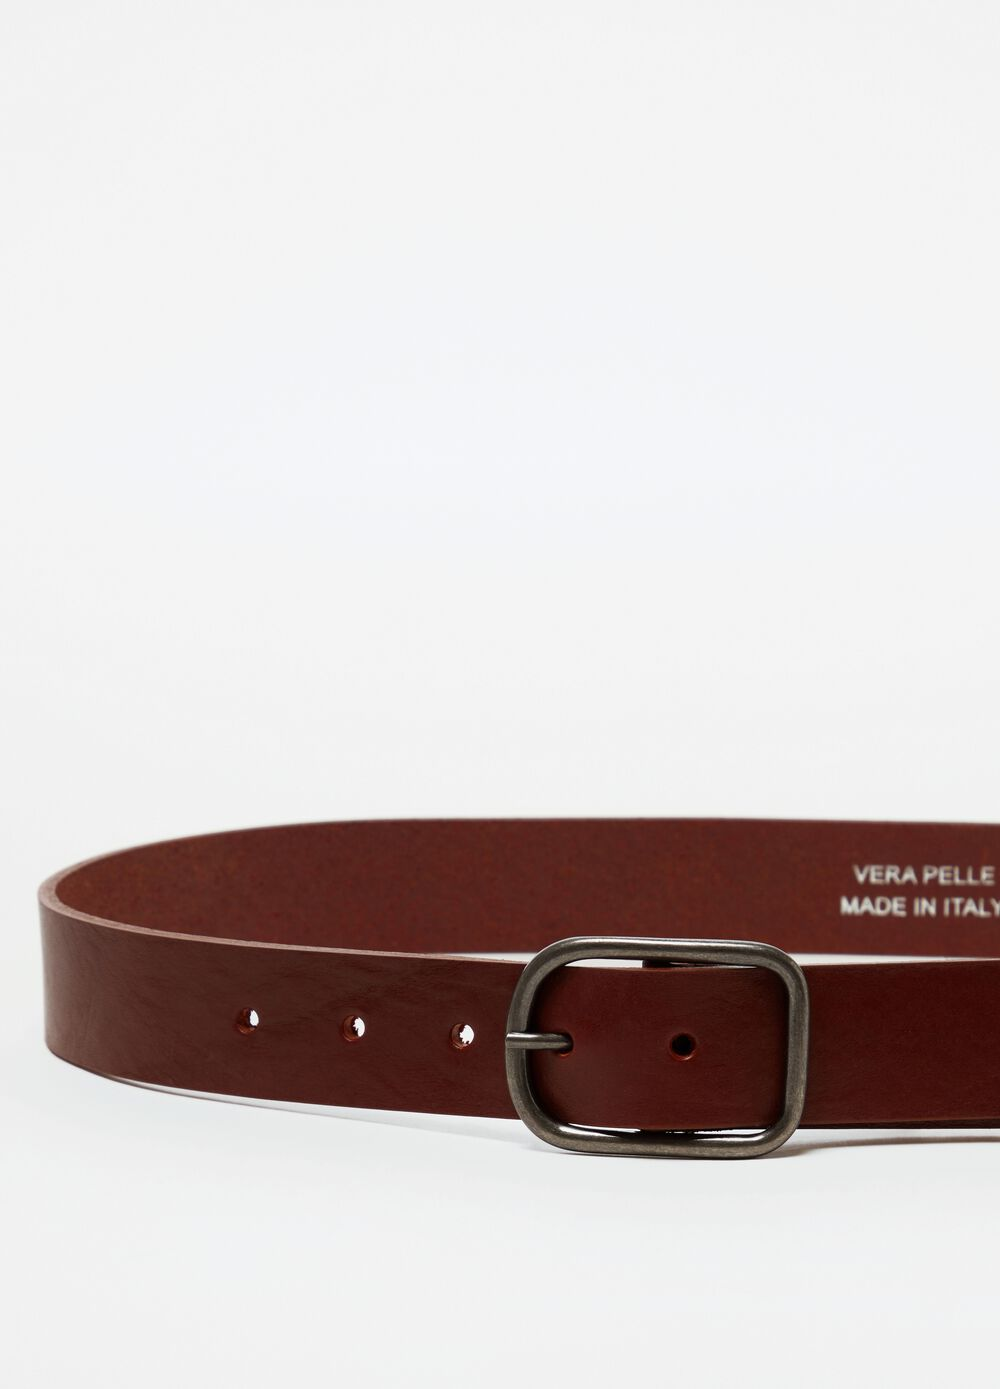 Real leather belt with rounded buckle